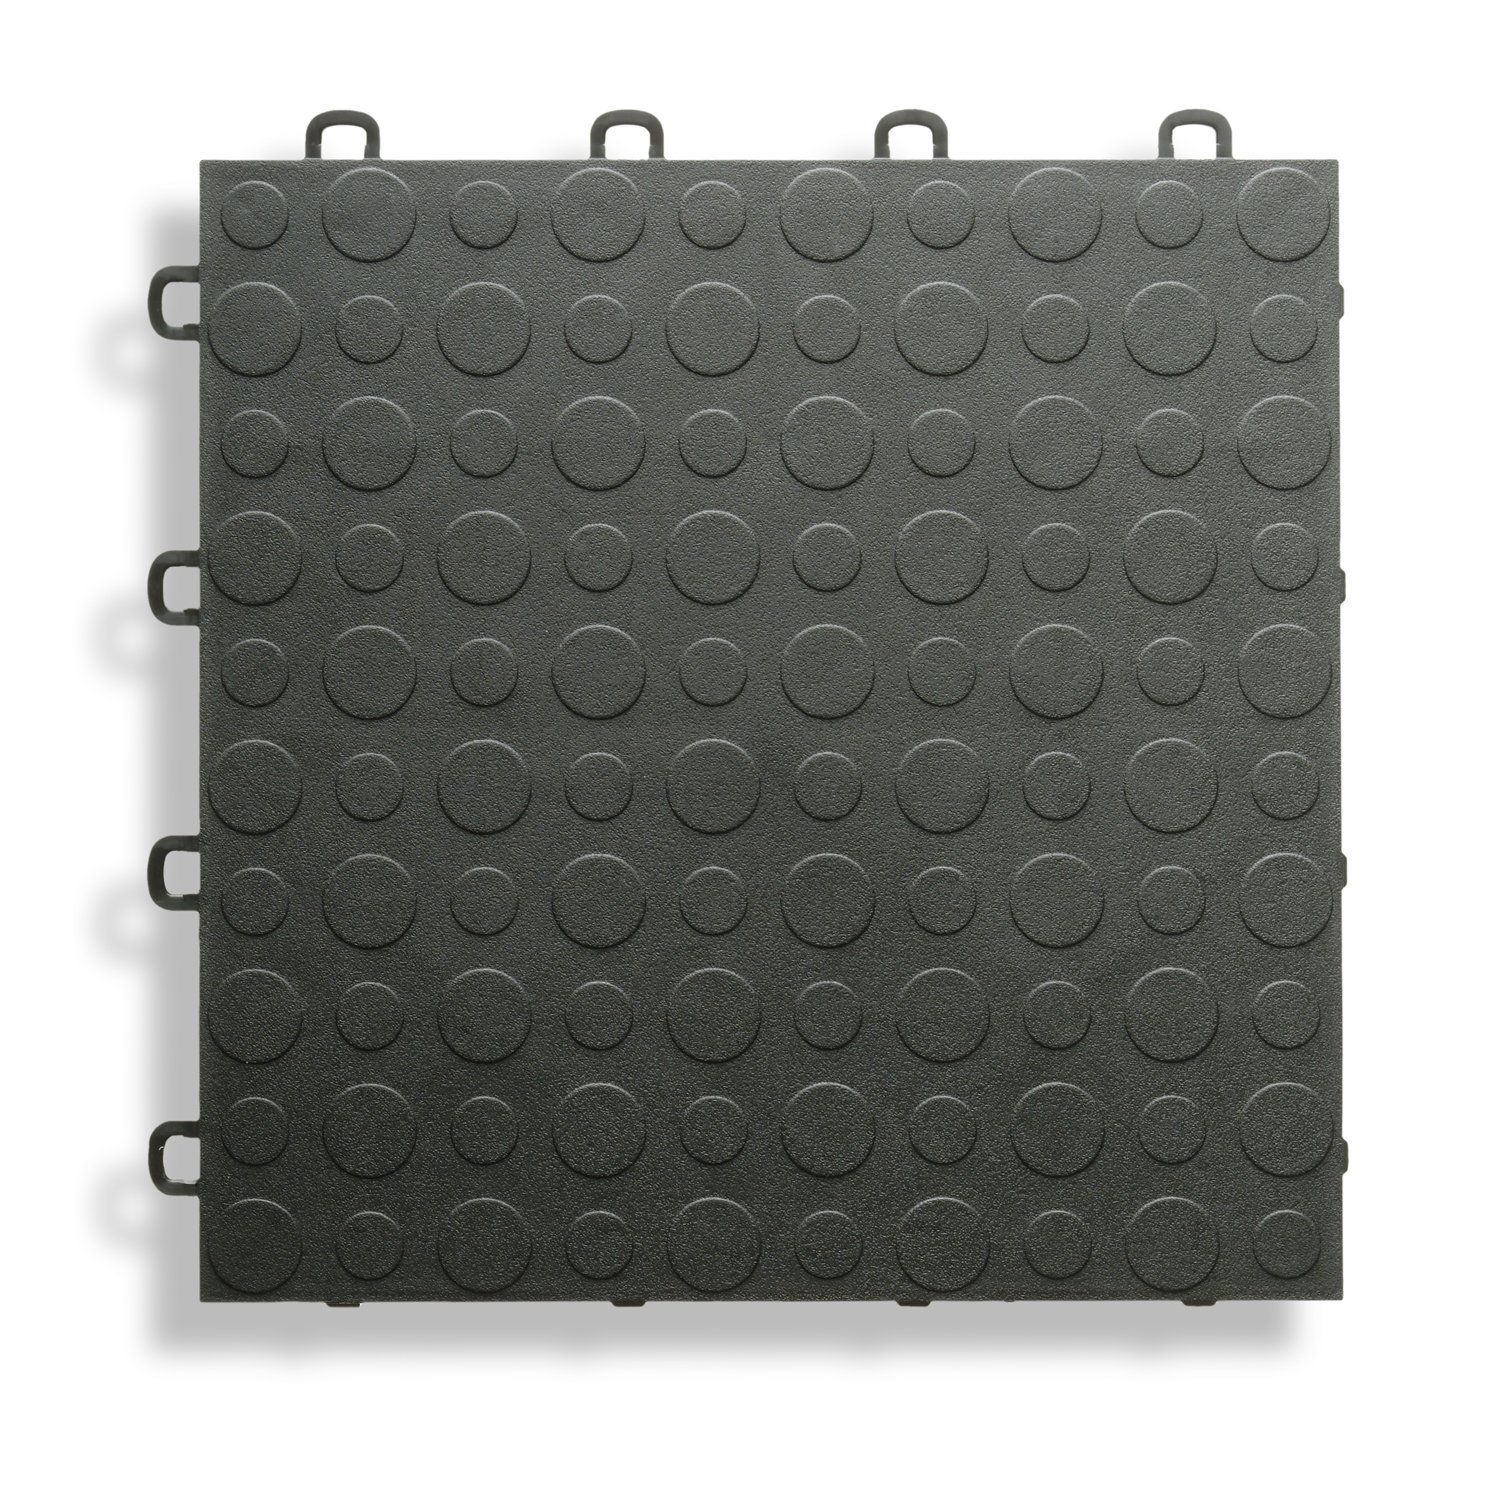 BlockTile B0US4230 Garage Flooring Interlocking Tiles Coin Top Pack, Black, 30-Pack - Construction Tiles - Amazon.com